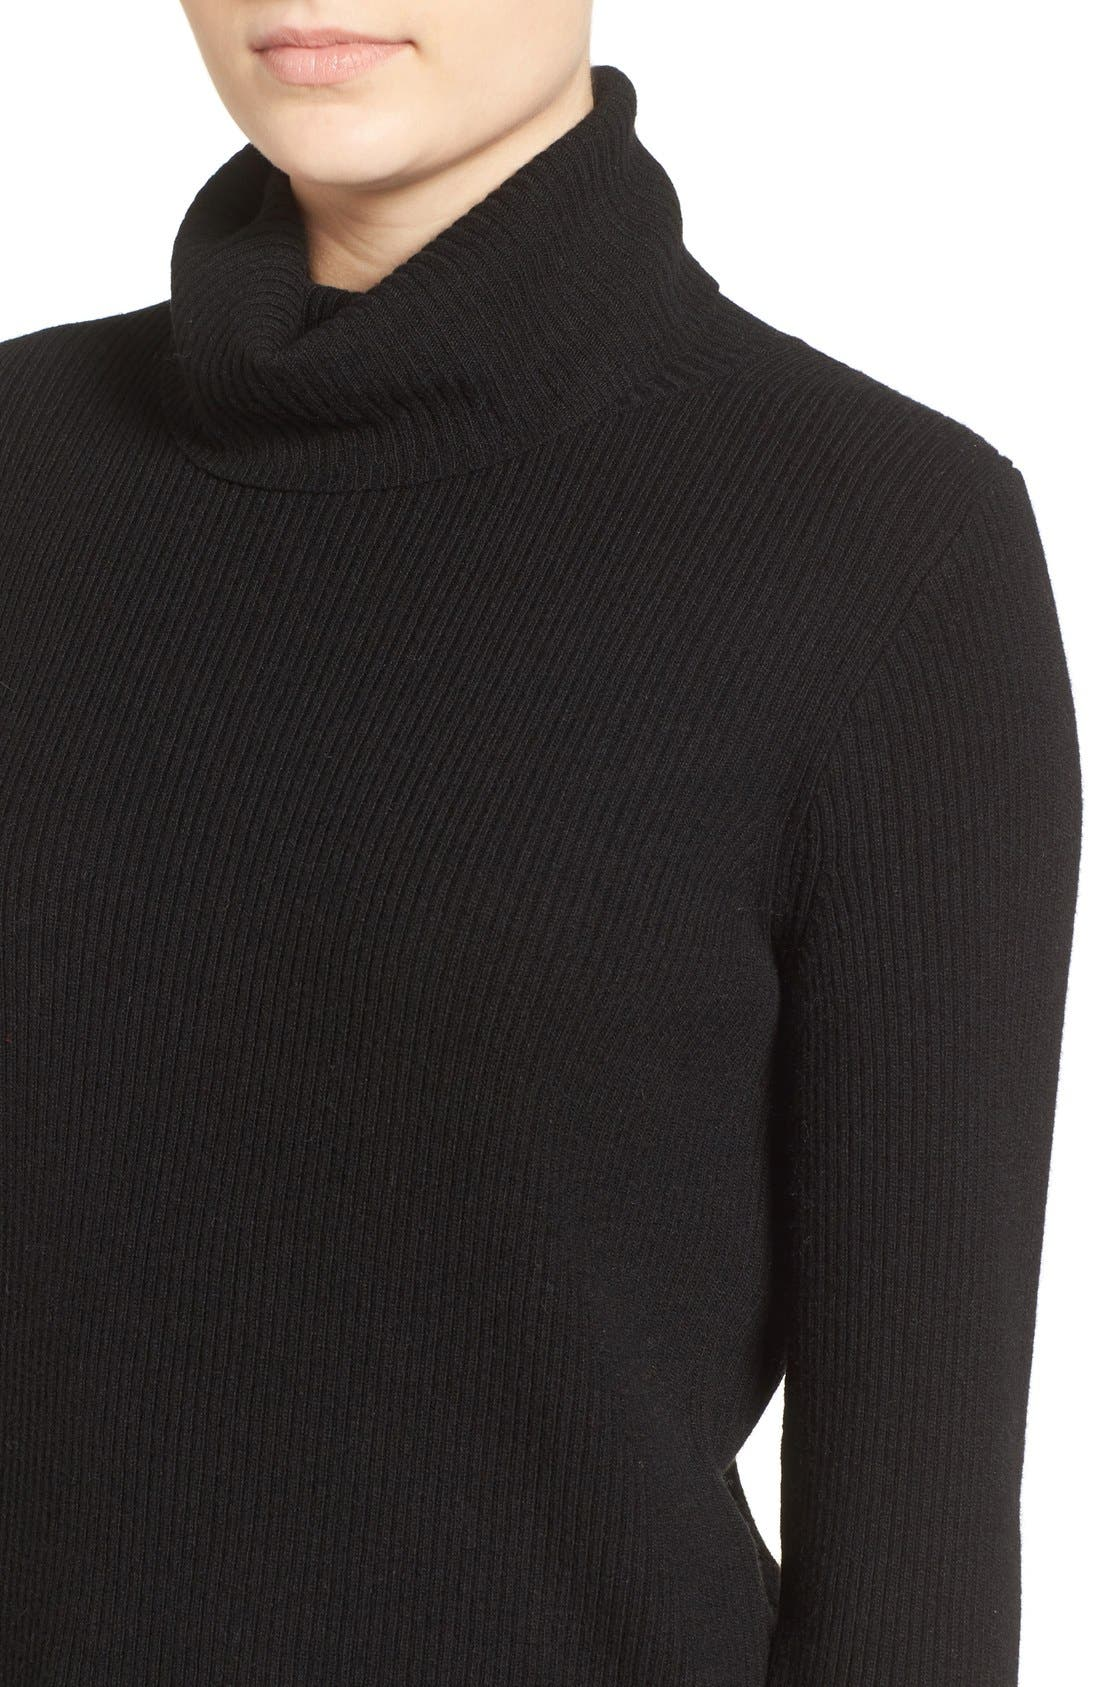 MADEWELL,                             Turtleneck Sweater,                             Alternate thumbnail 7, color,                             001